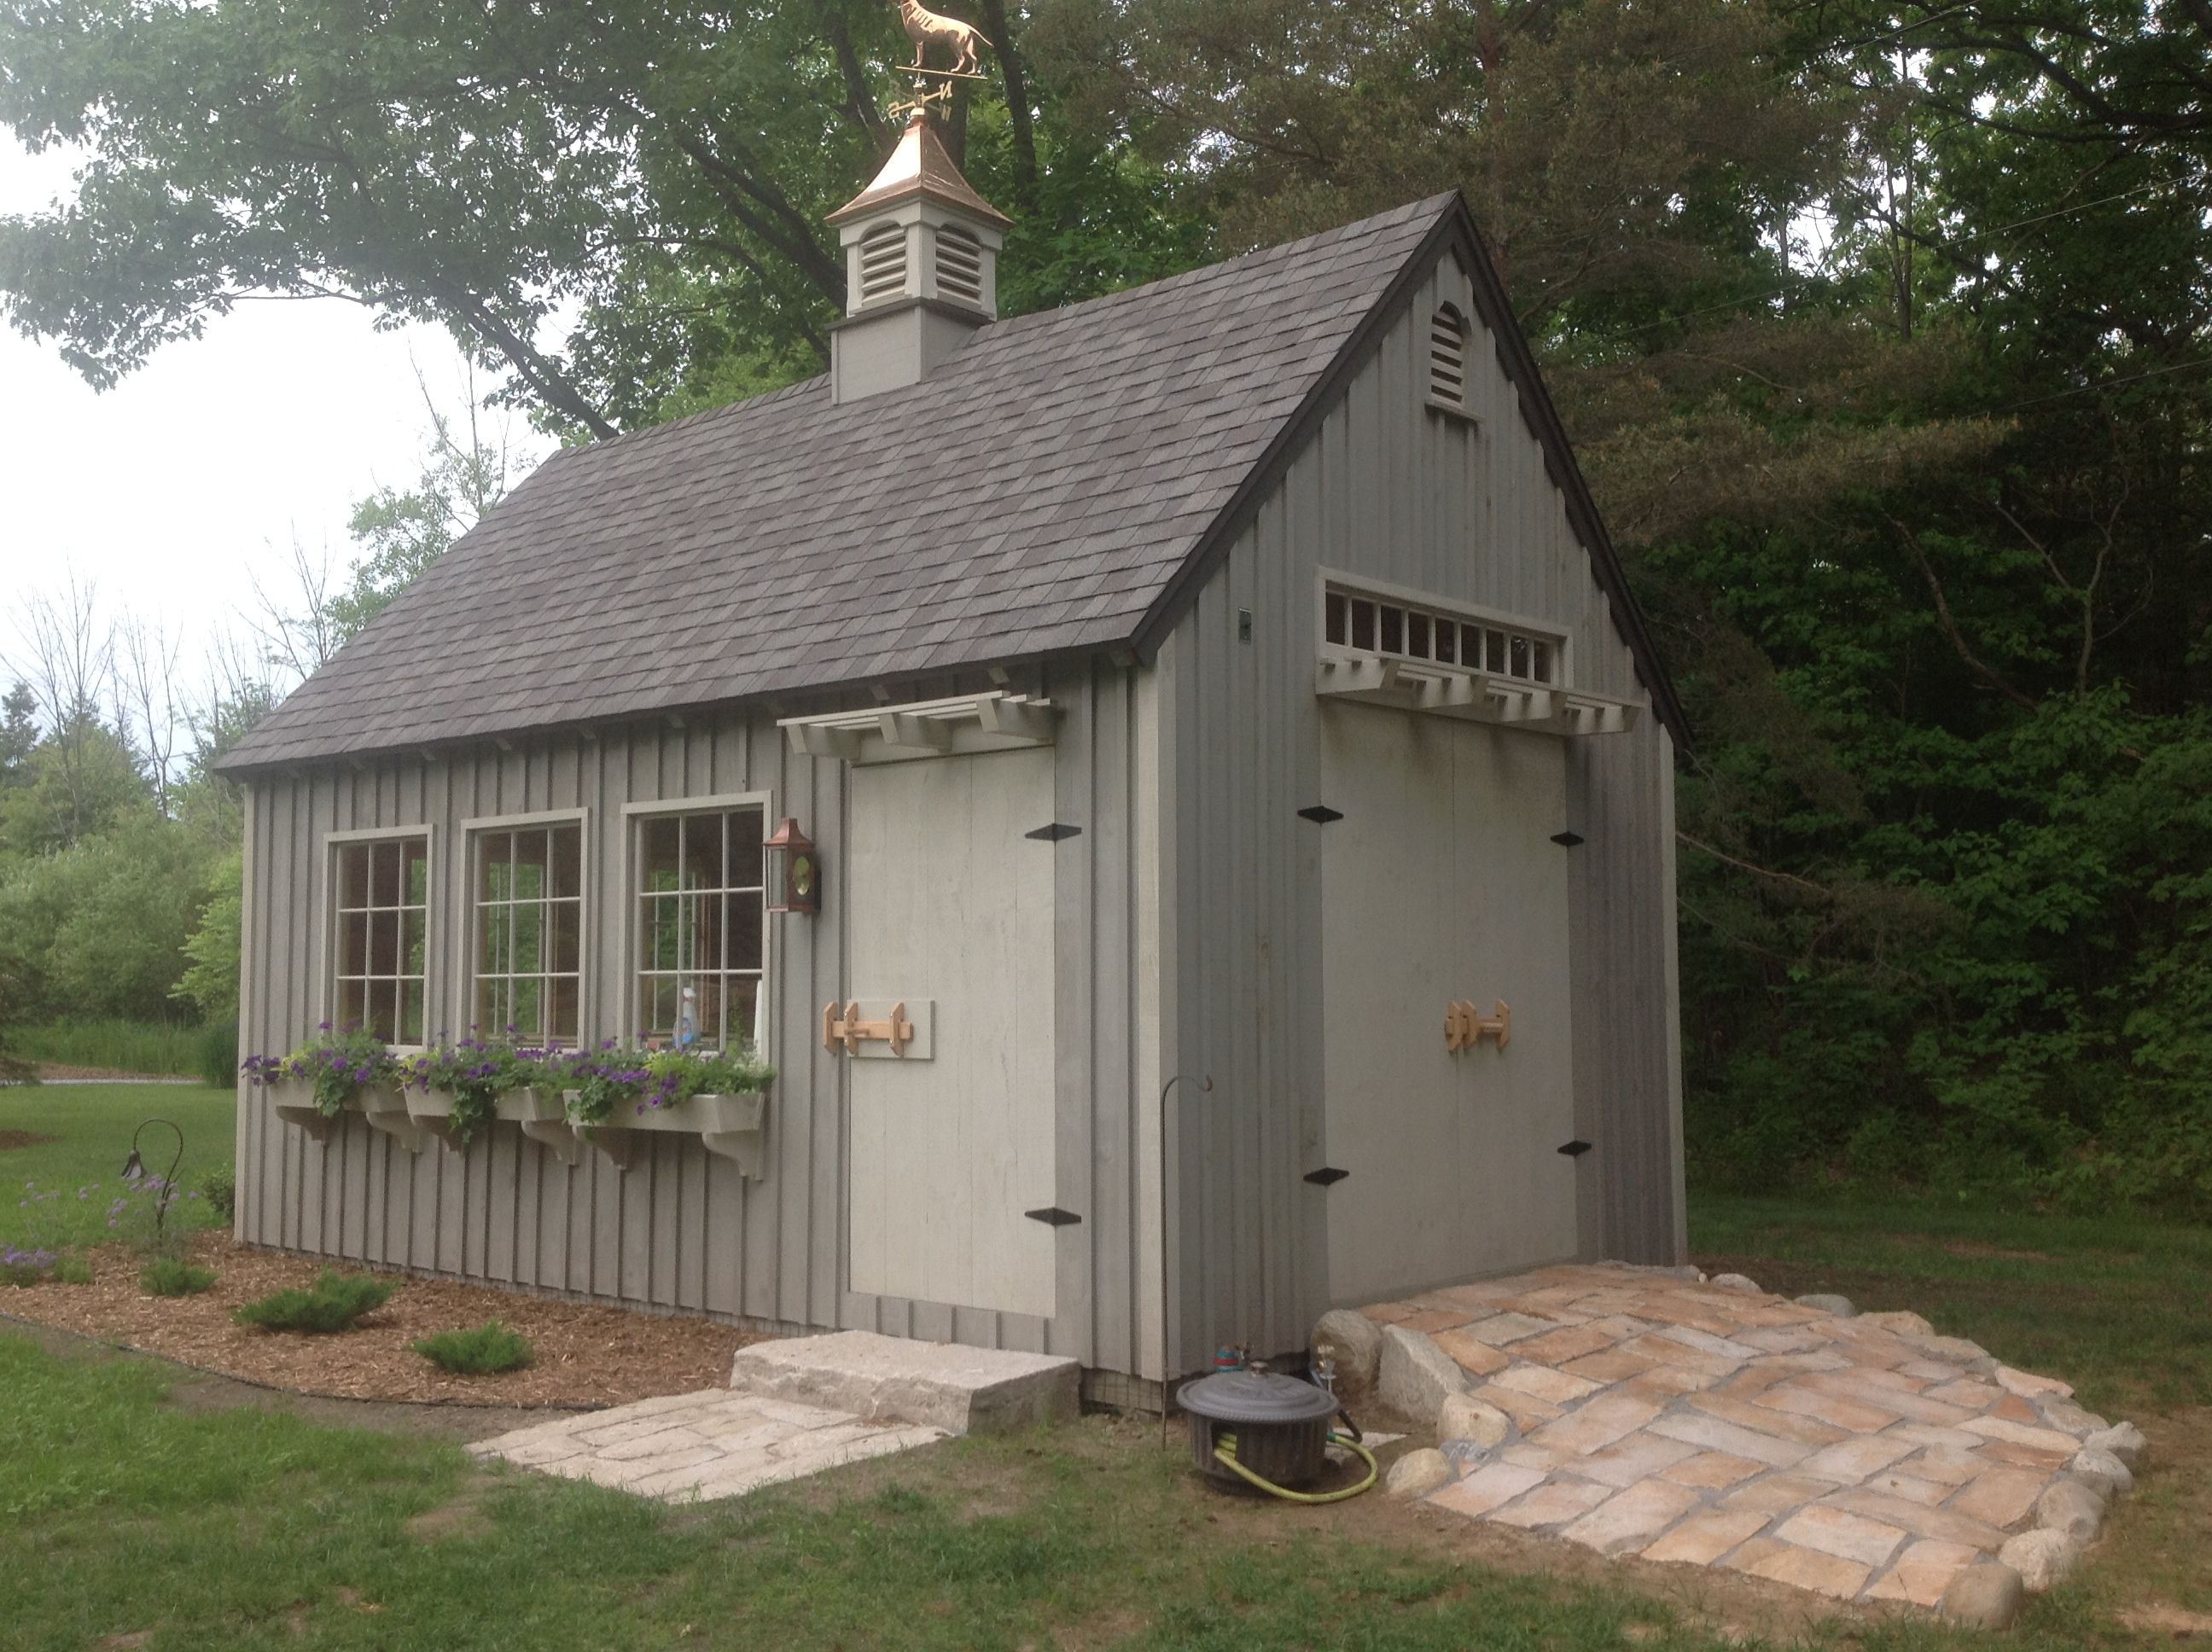 Our 12 X 20 Even Pitch Post Beam Garden Shed Www Countrycarpenters Com Backyard Sheds Building A Shed Outdoor Sheds